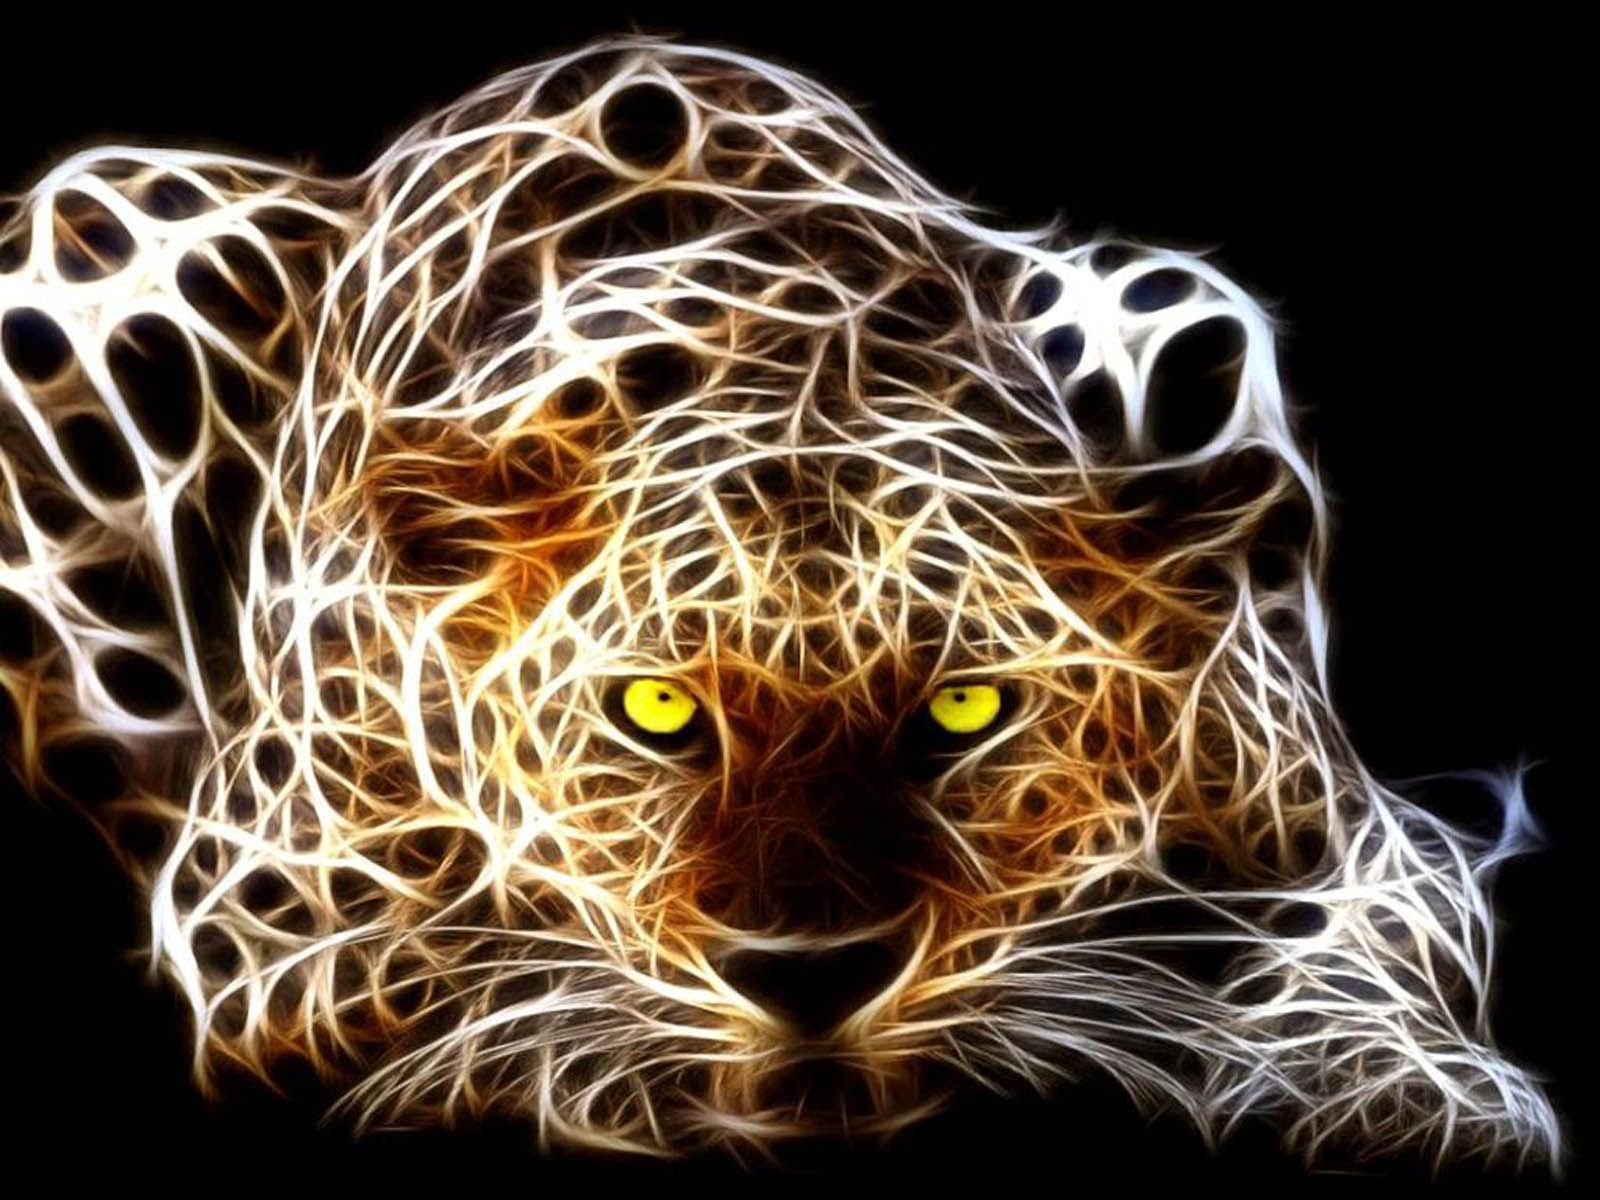 Cool 3d Hd Wallpapers Tiger With Hd Desktop Backgrounds With 3d Hd Wallpapers Tiger Download Hd Wallpaper Tiger Wallpaper Diamond Painting Needlework Gifts